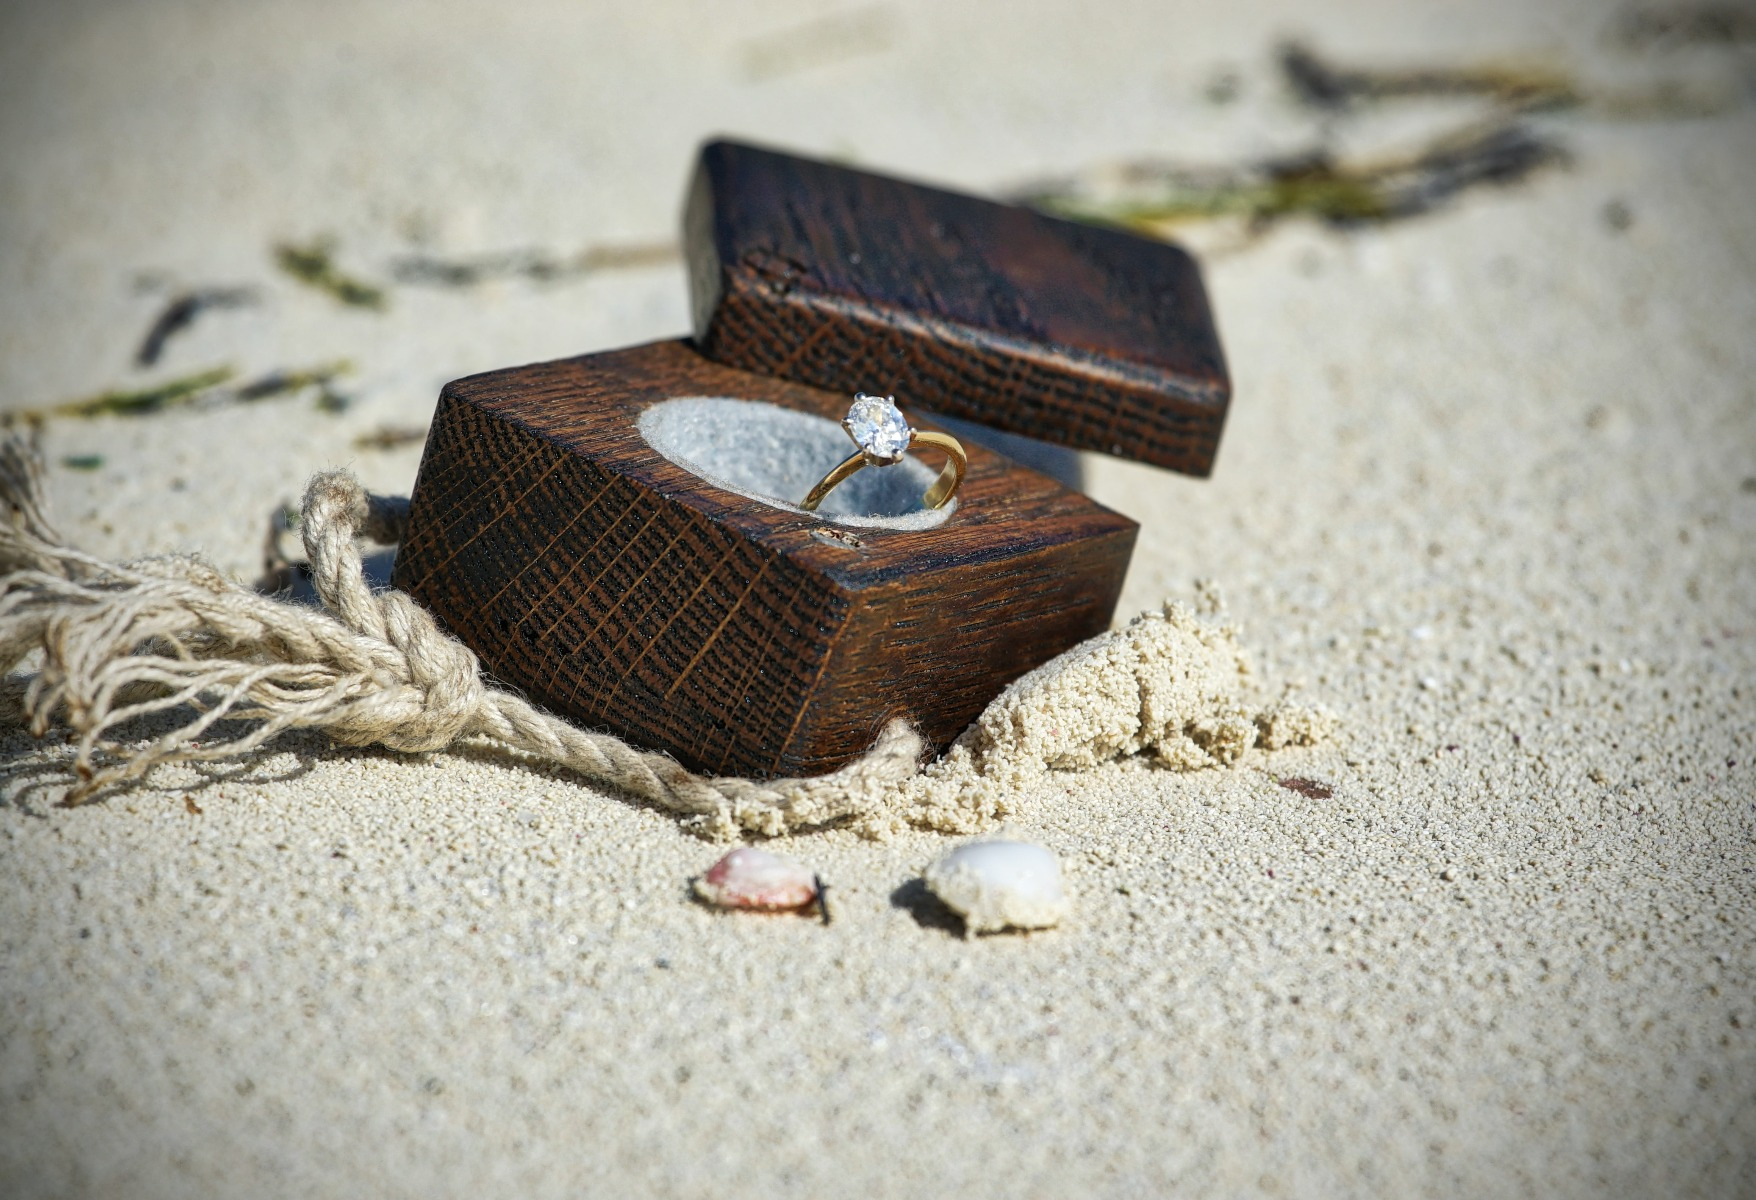 Engagement ring in an engagement box in the sand on a beach